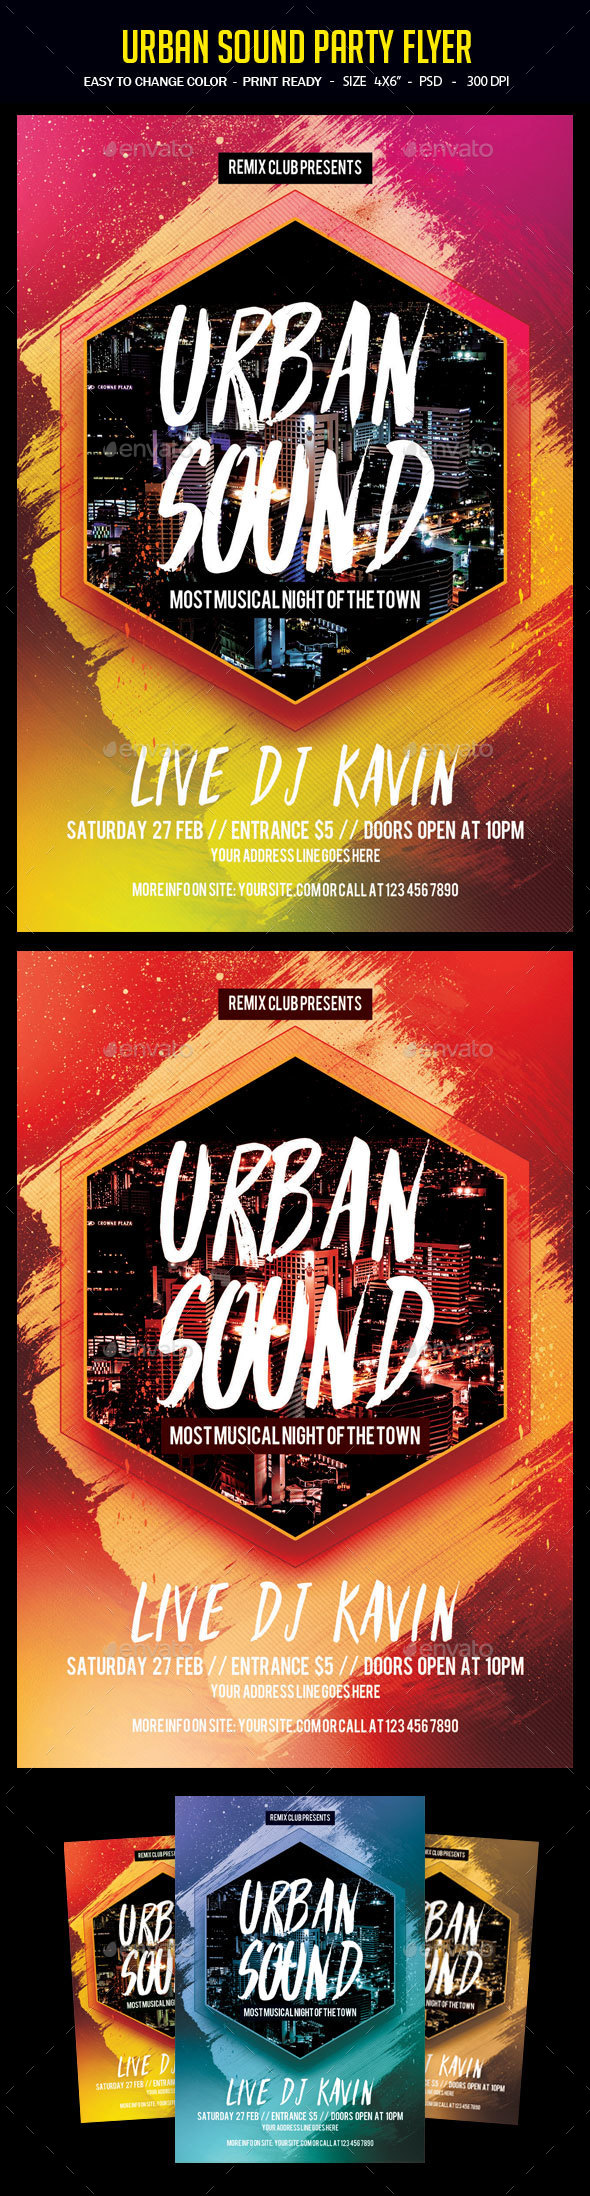 Urban Sound Party Flyer - Clubs & Parties Events